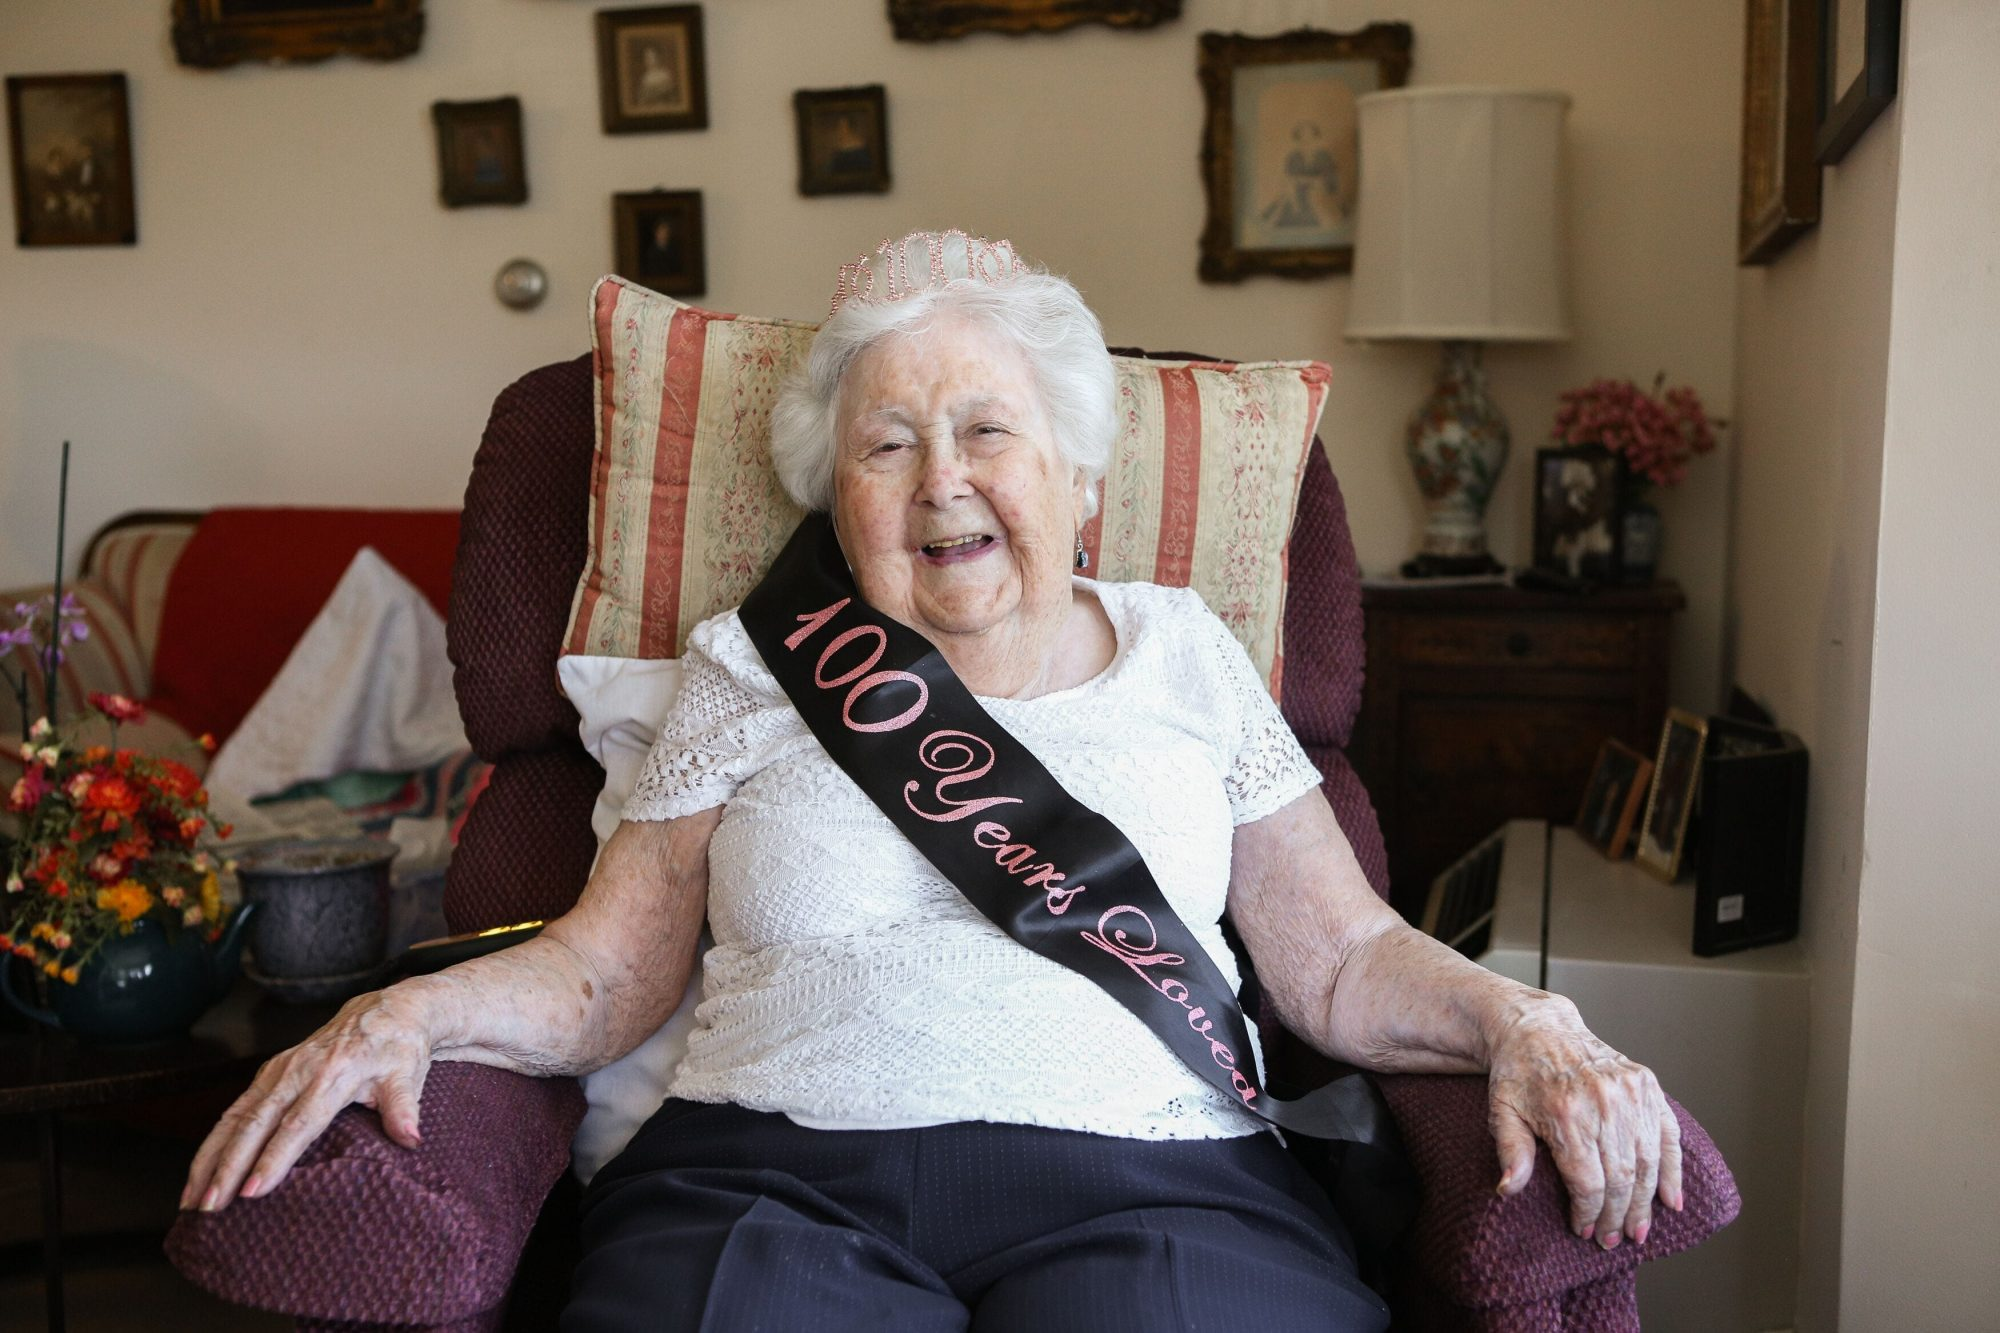 Resident Stasi Dunau with a sash and a tiara celebrating her 100th birthday